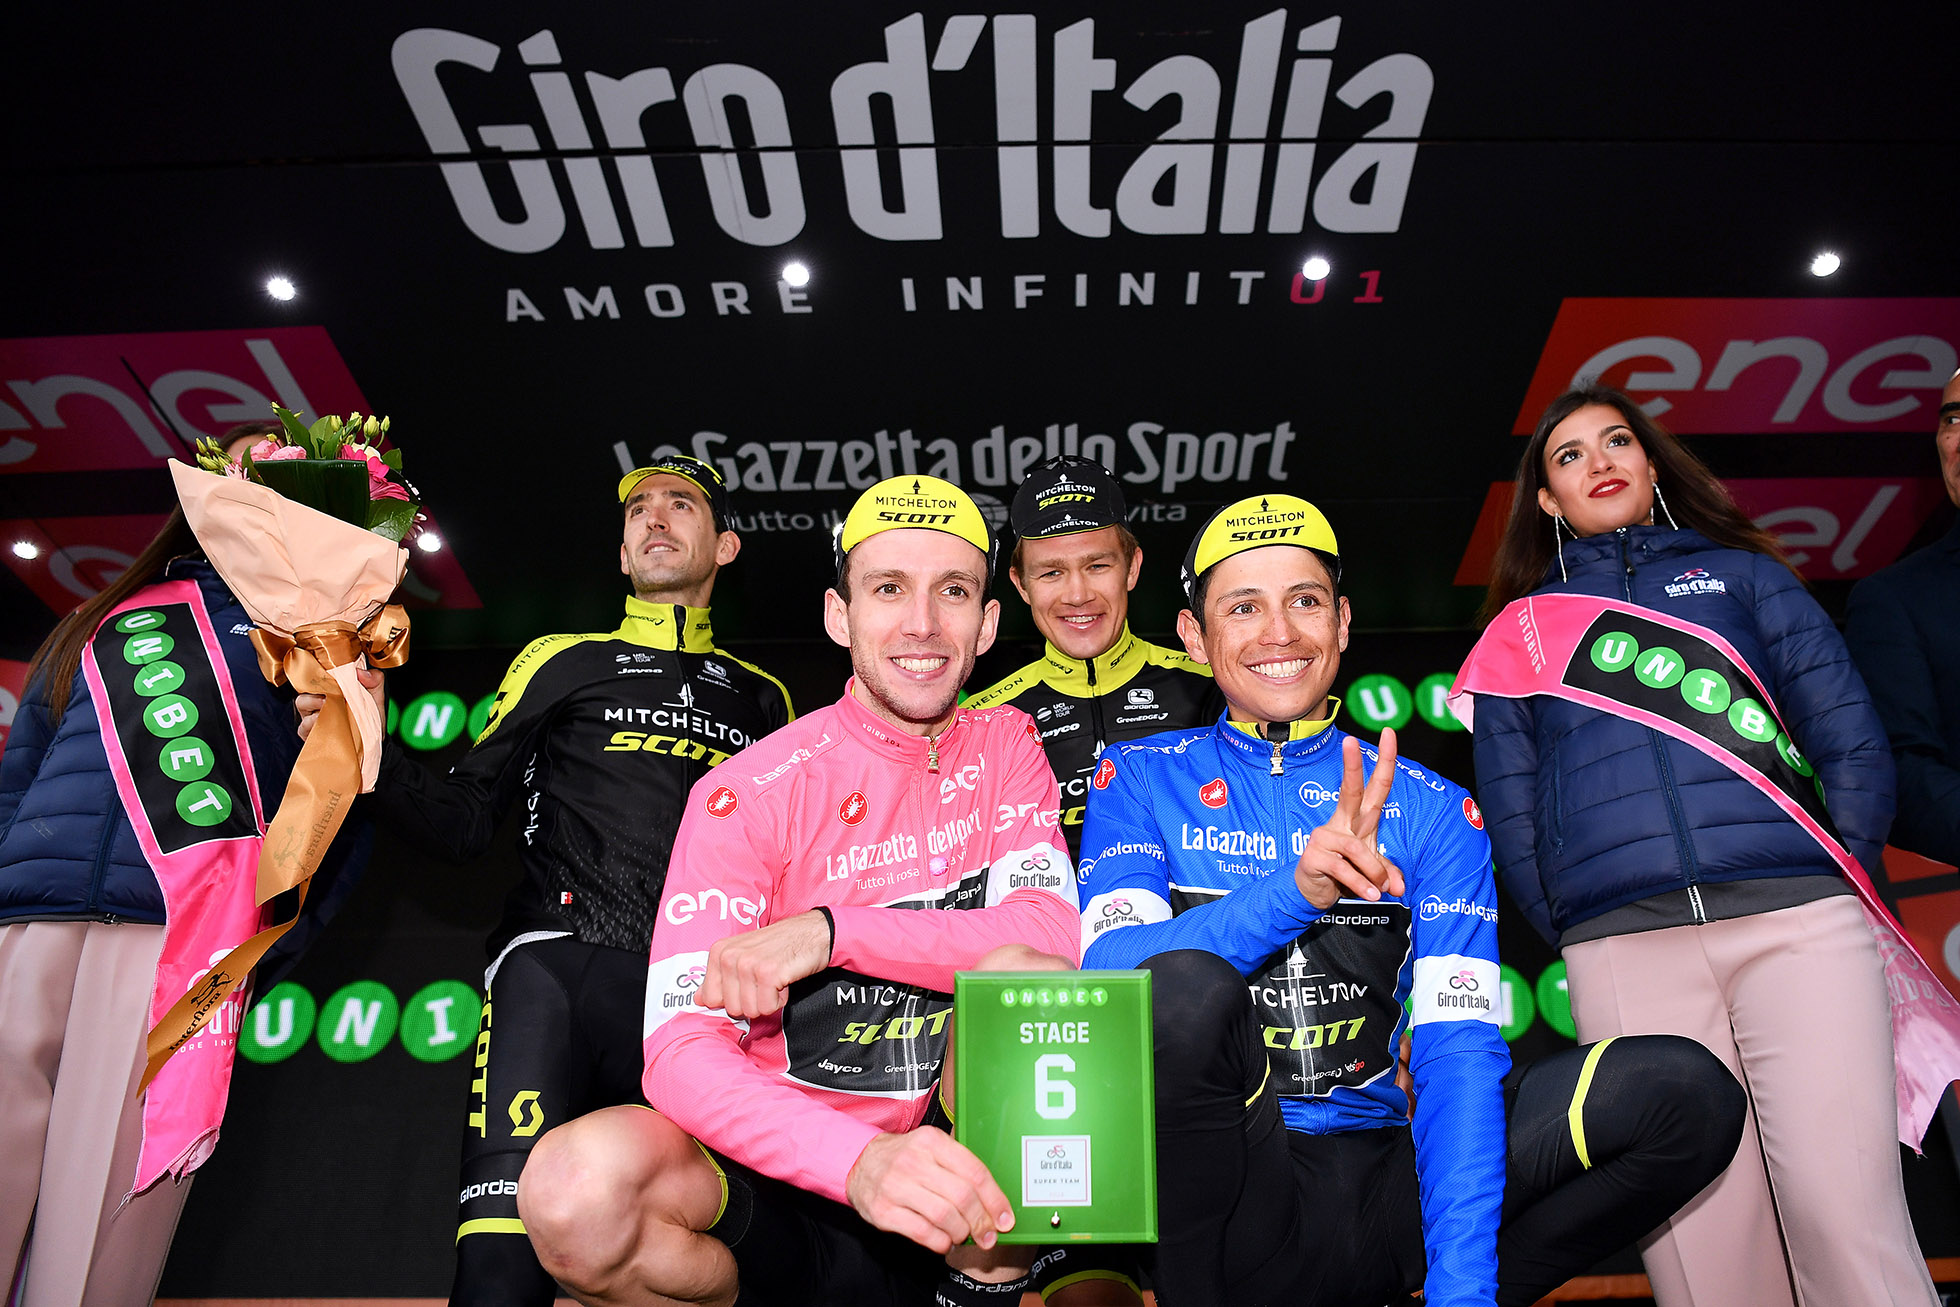 ETNA, ITALY - MAY 10: Podium / Simon Yates of Great Britain Pink Leader Jersey / Johan Esteban Chaves Rubio of Colombia Blue Mountain Jersey / Mikel Nieve Ituralde of Spain / Christopher Juul Jensen of Denmark / Team Mitchelton-Scott of Australia / Super Team / Celebration / during the 101th Tour of Italy 2018, Stage 6 a 164km stage from Caltanissetta to Etna-Oss.Astrofisico 1736m / Giro d'Italia / on May 10, 2018 in Etna, Italy. (Photo by Justin Setterfield/Getty Images)